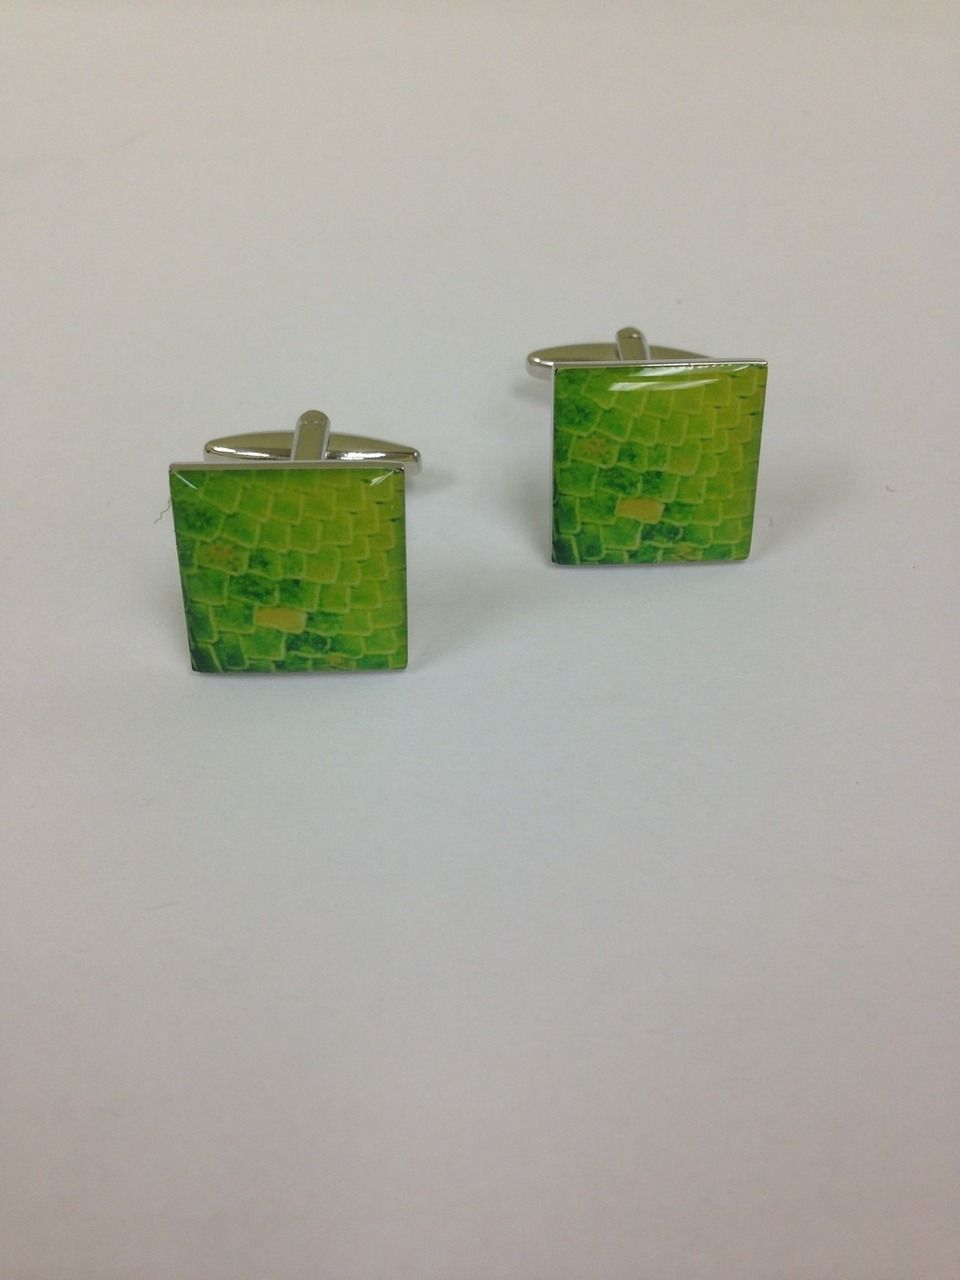 2 Pc. Gator Print Green Design Cufflinks